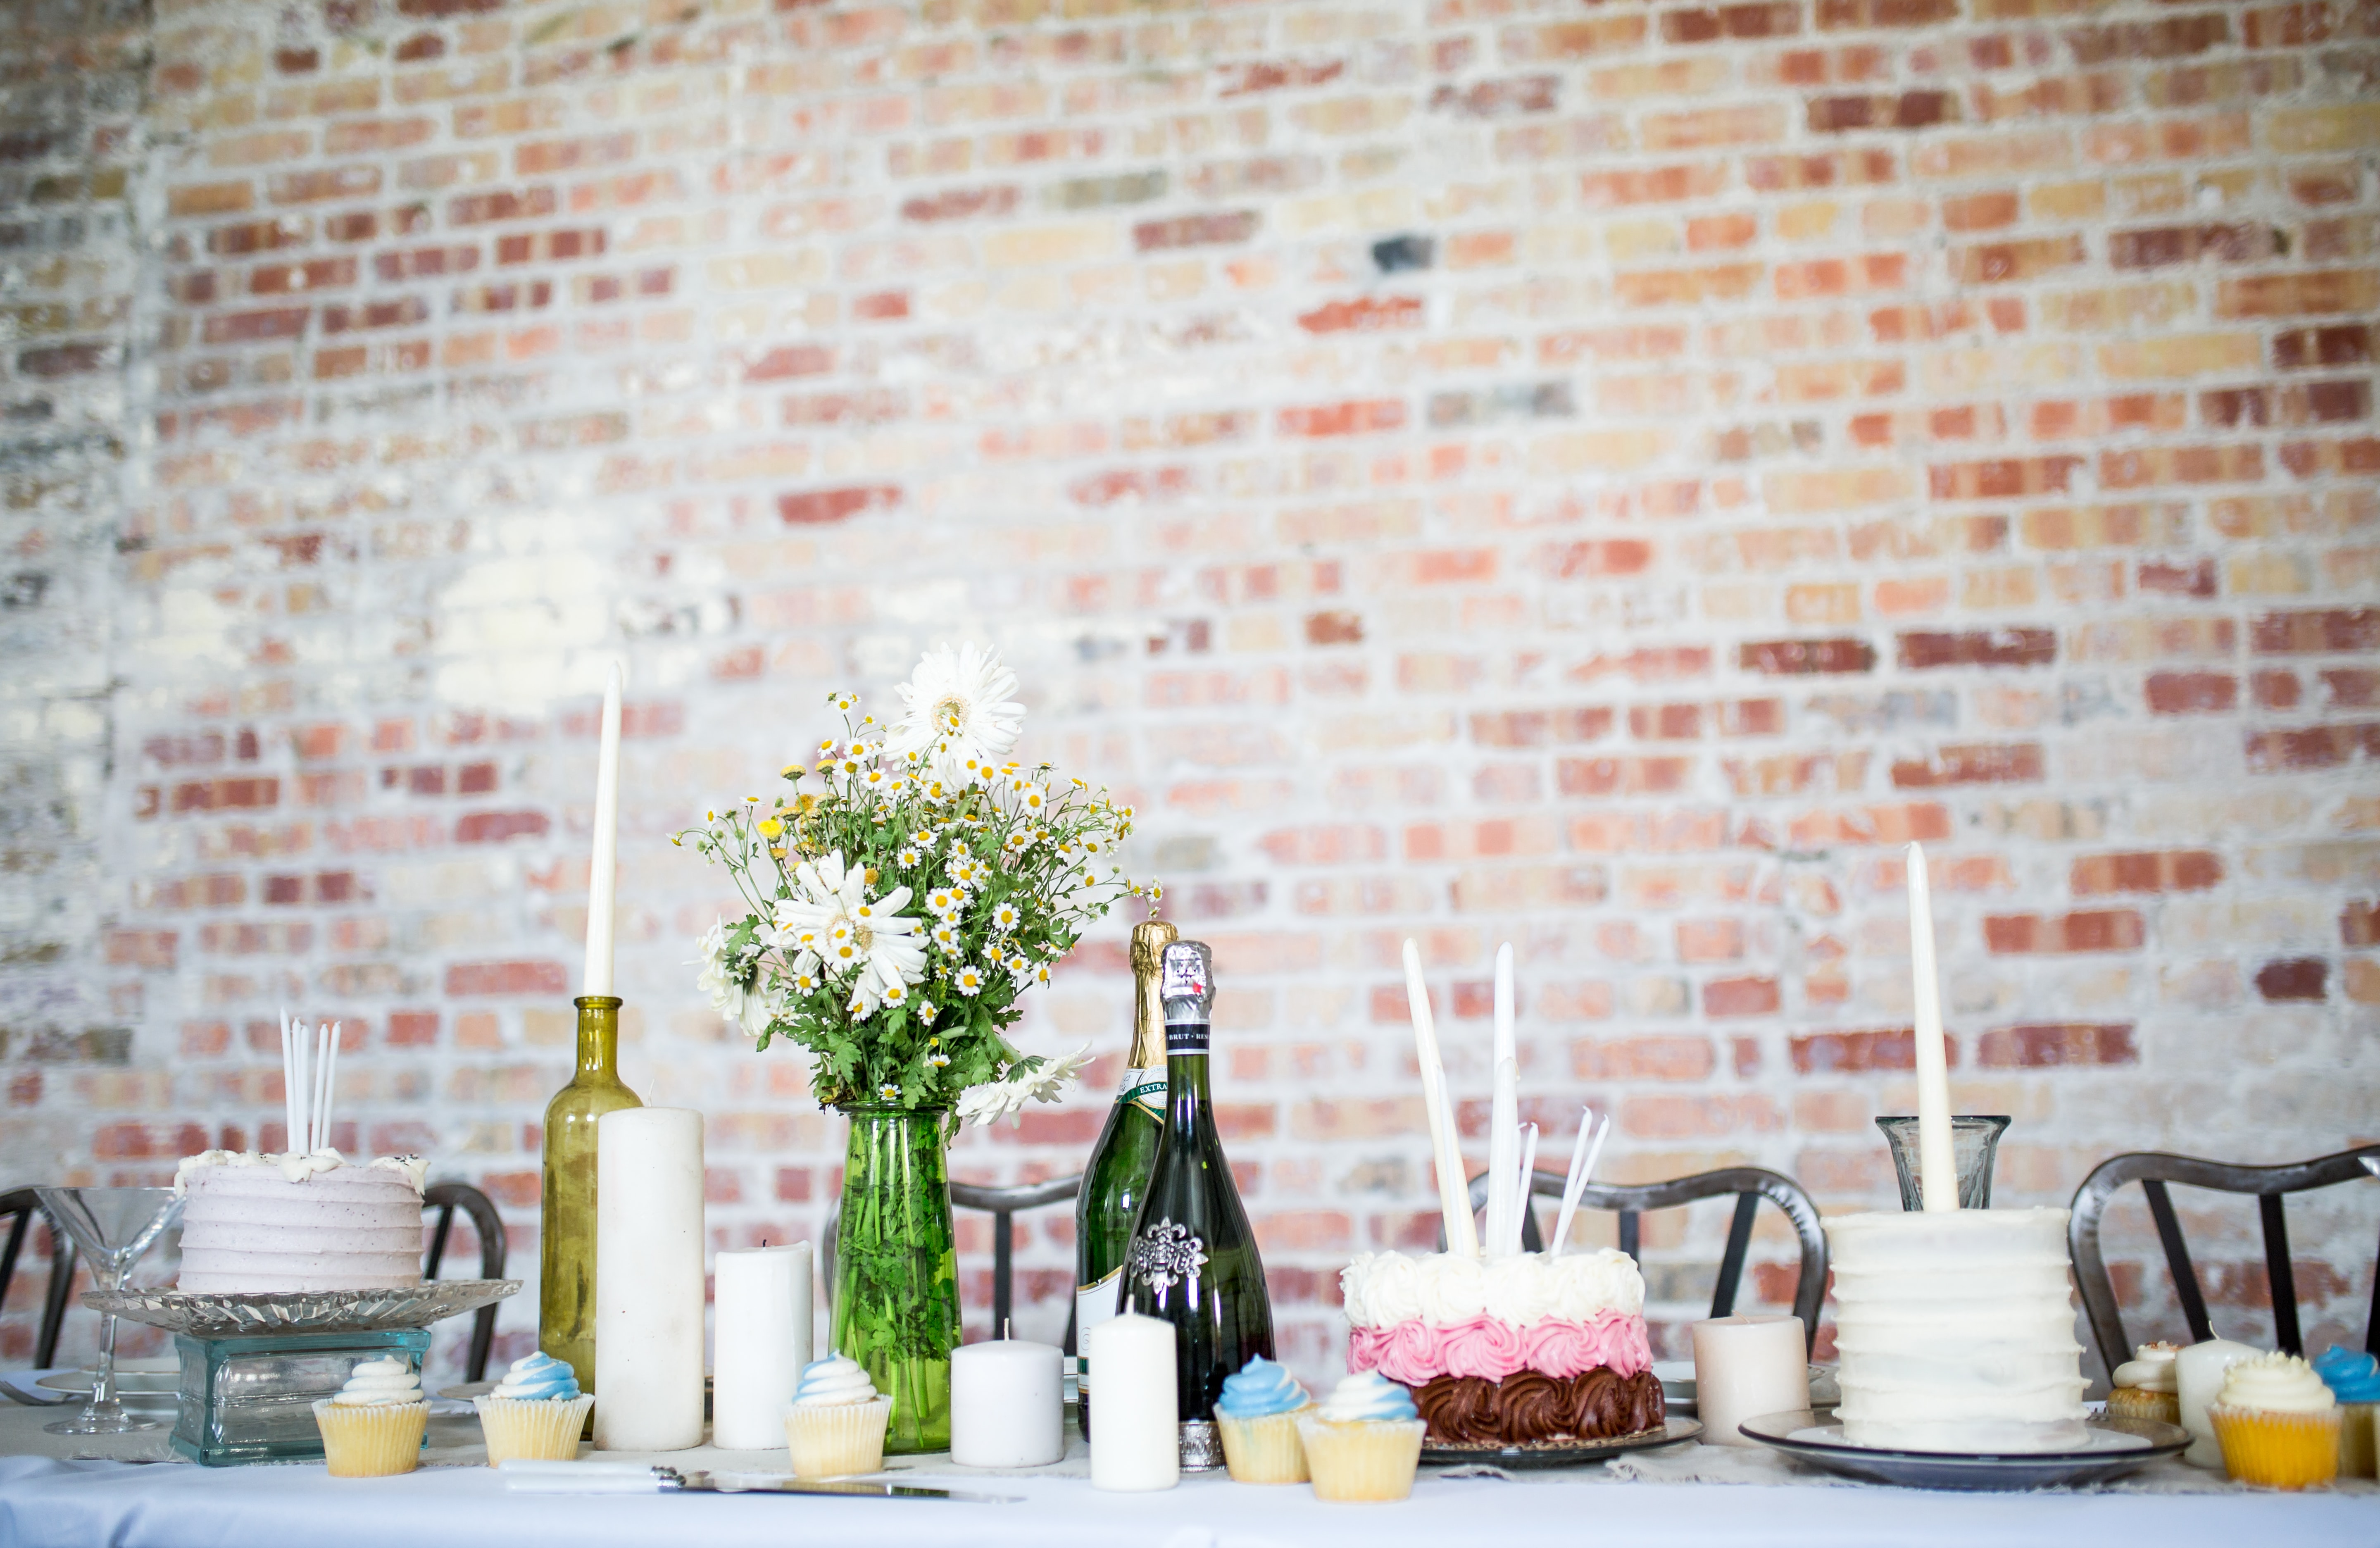 cake beside candles and flowers